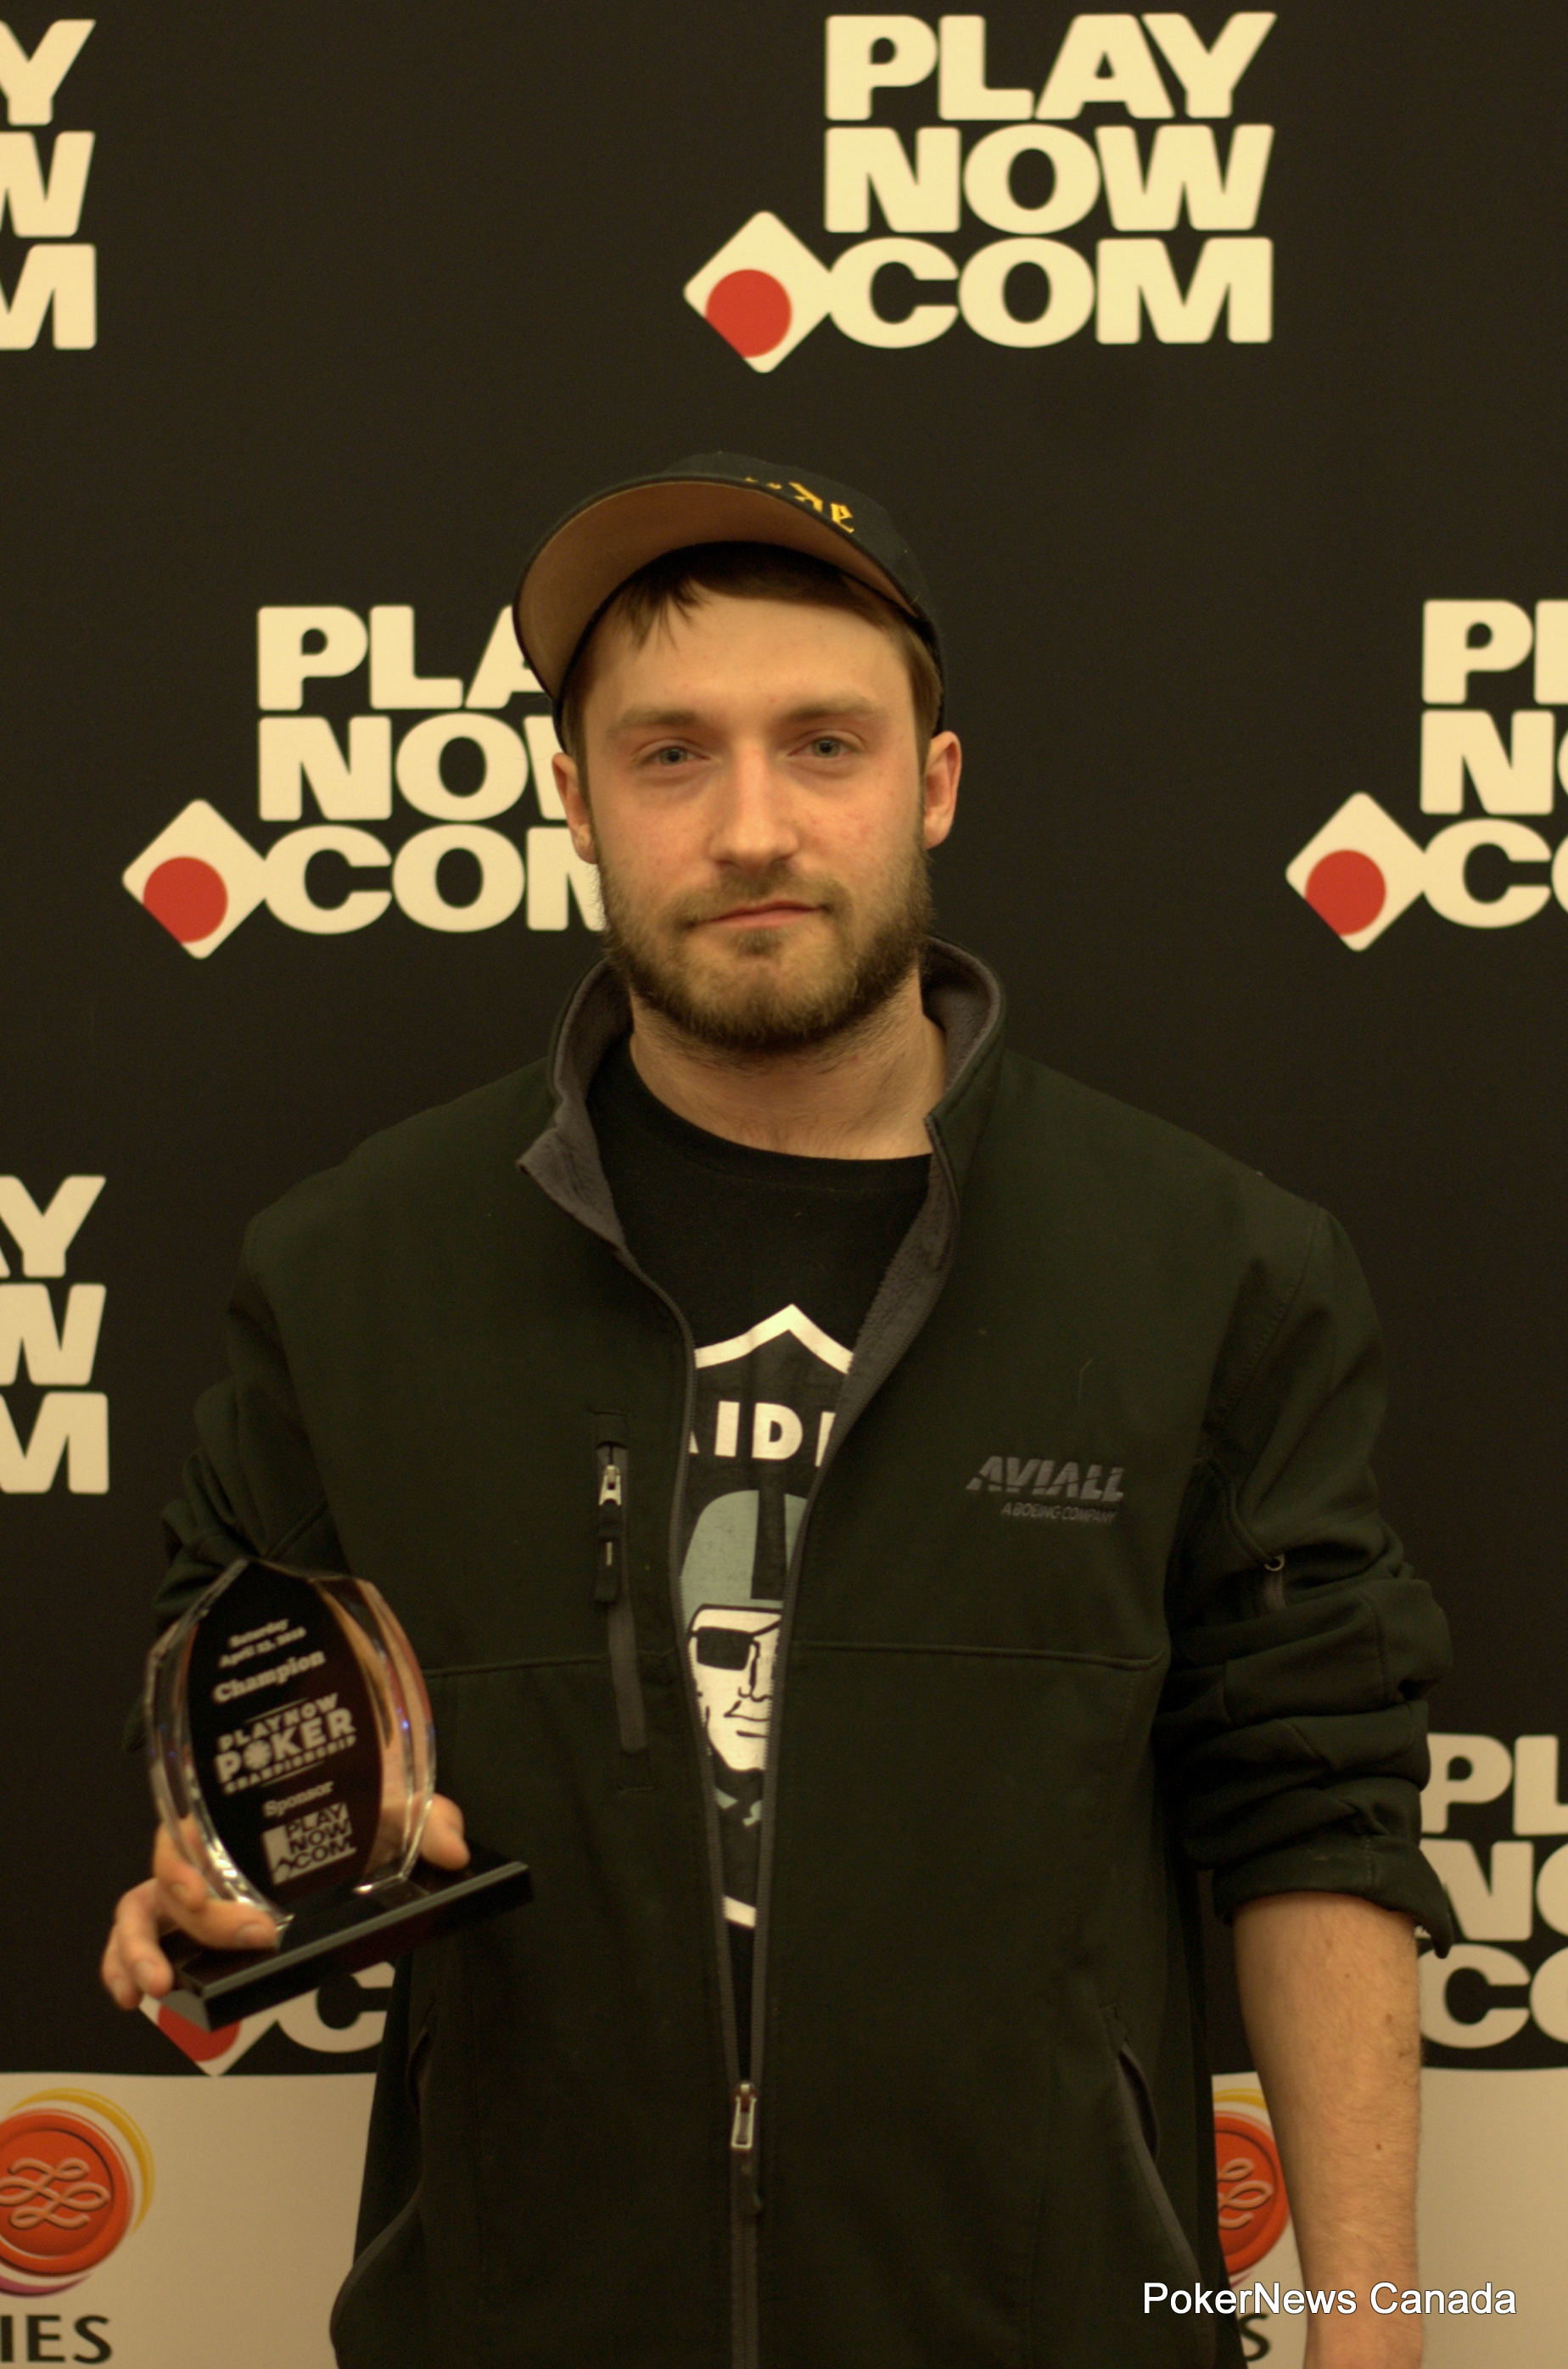 Jorday Feasey won the $400 PlayNow.com No Limit Hold'em Tournament.